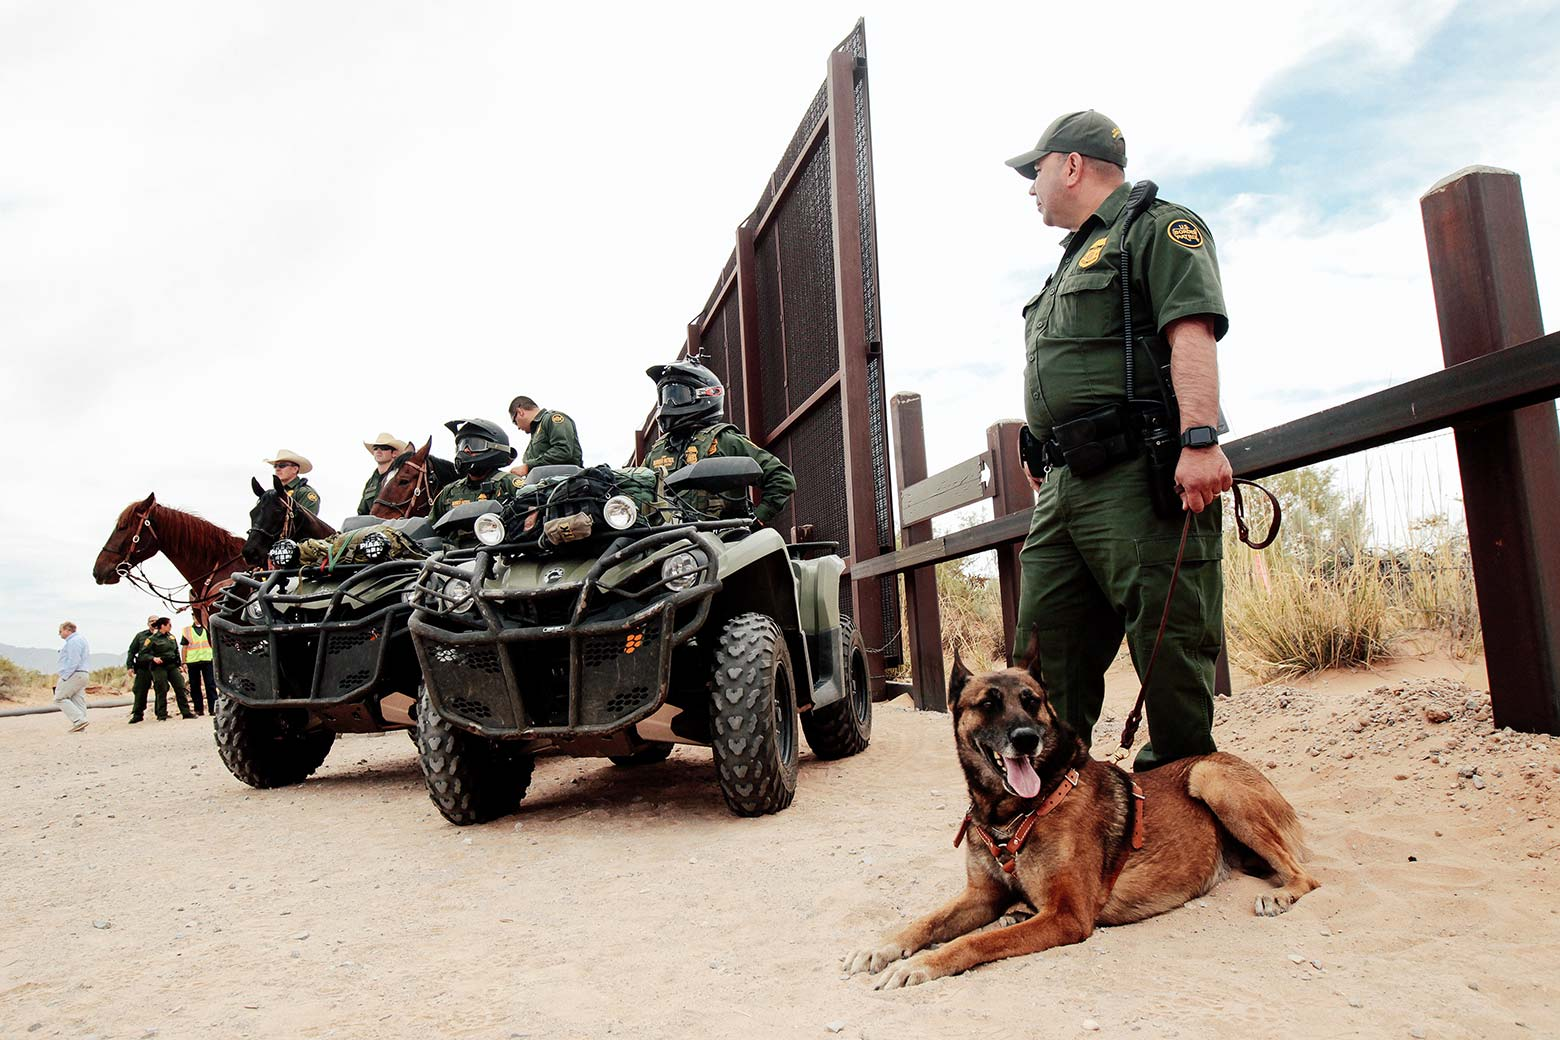 Border Patrol agents on horses and ATVs, as well as a guard on foot with a dog, at the Southern border.